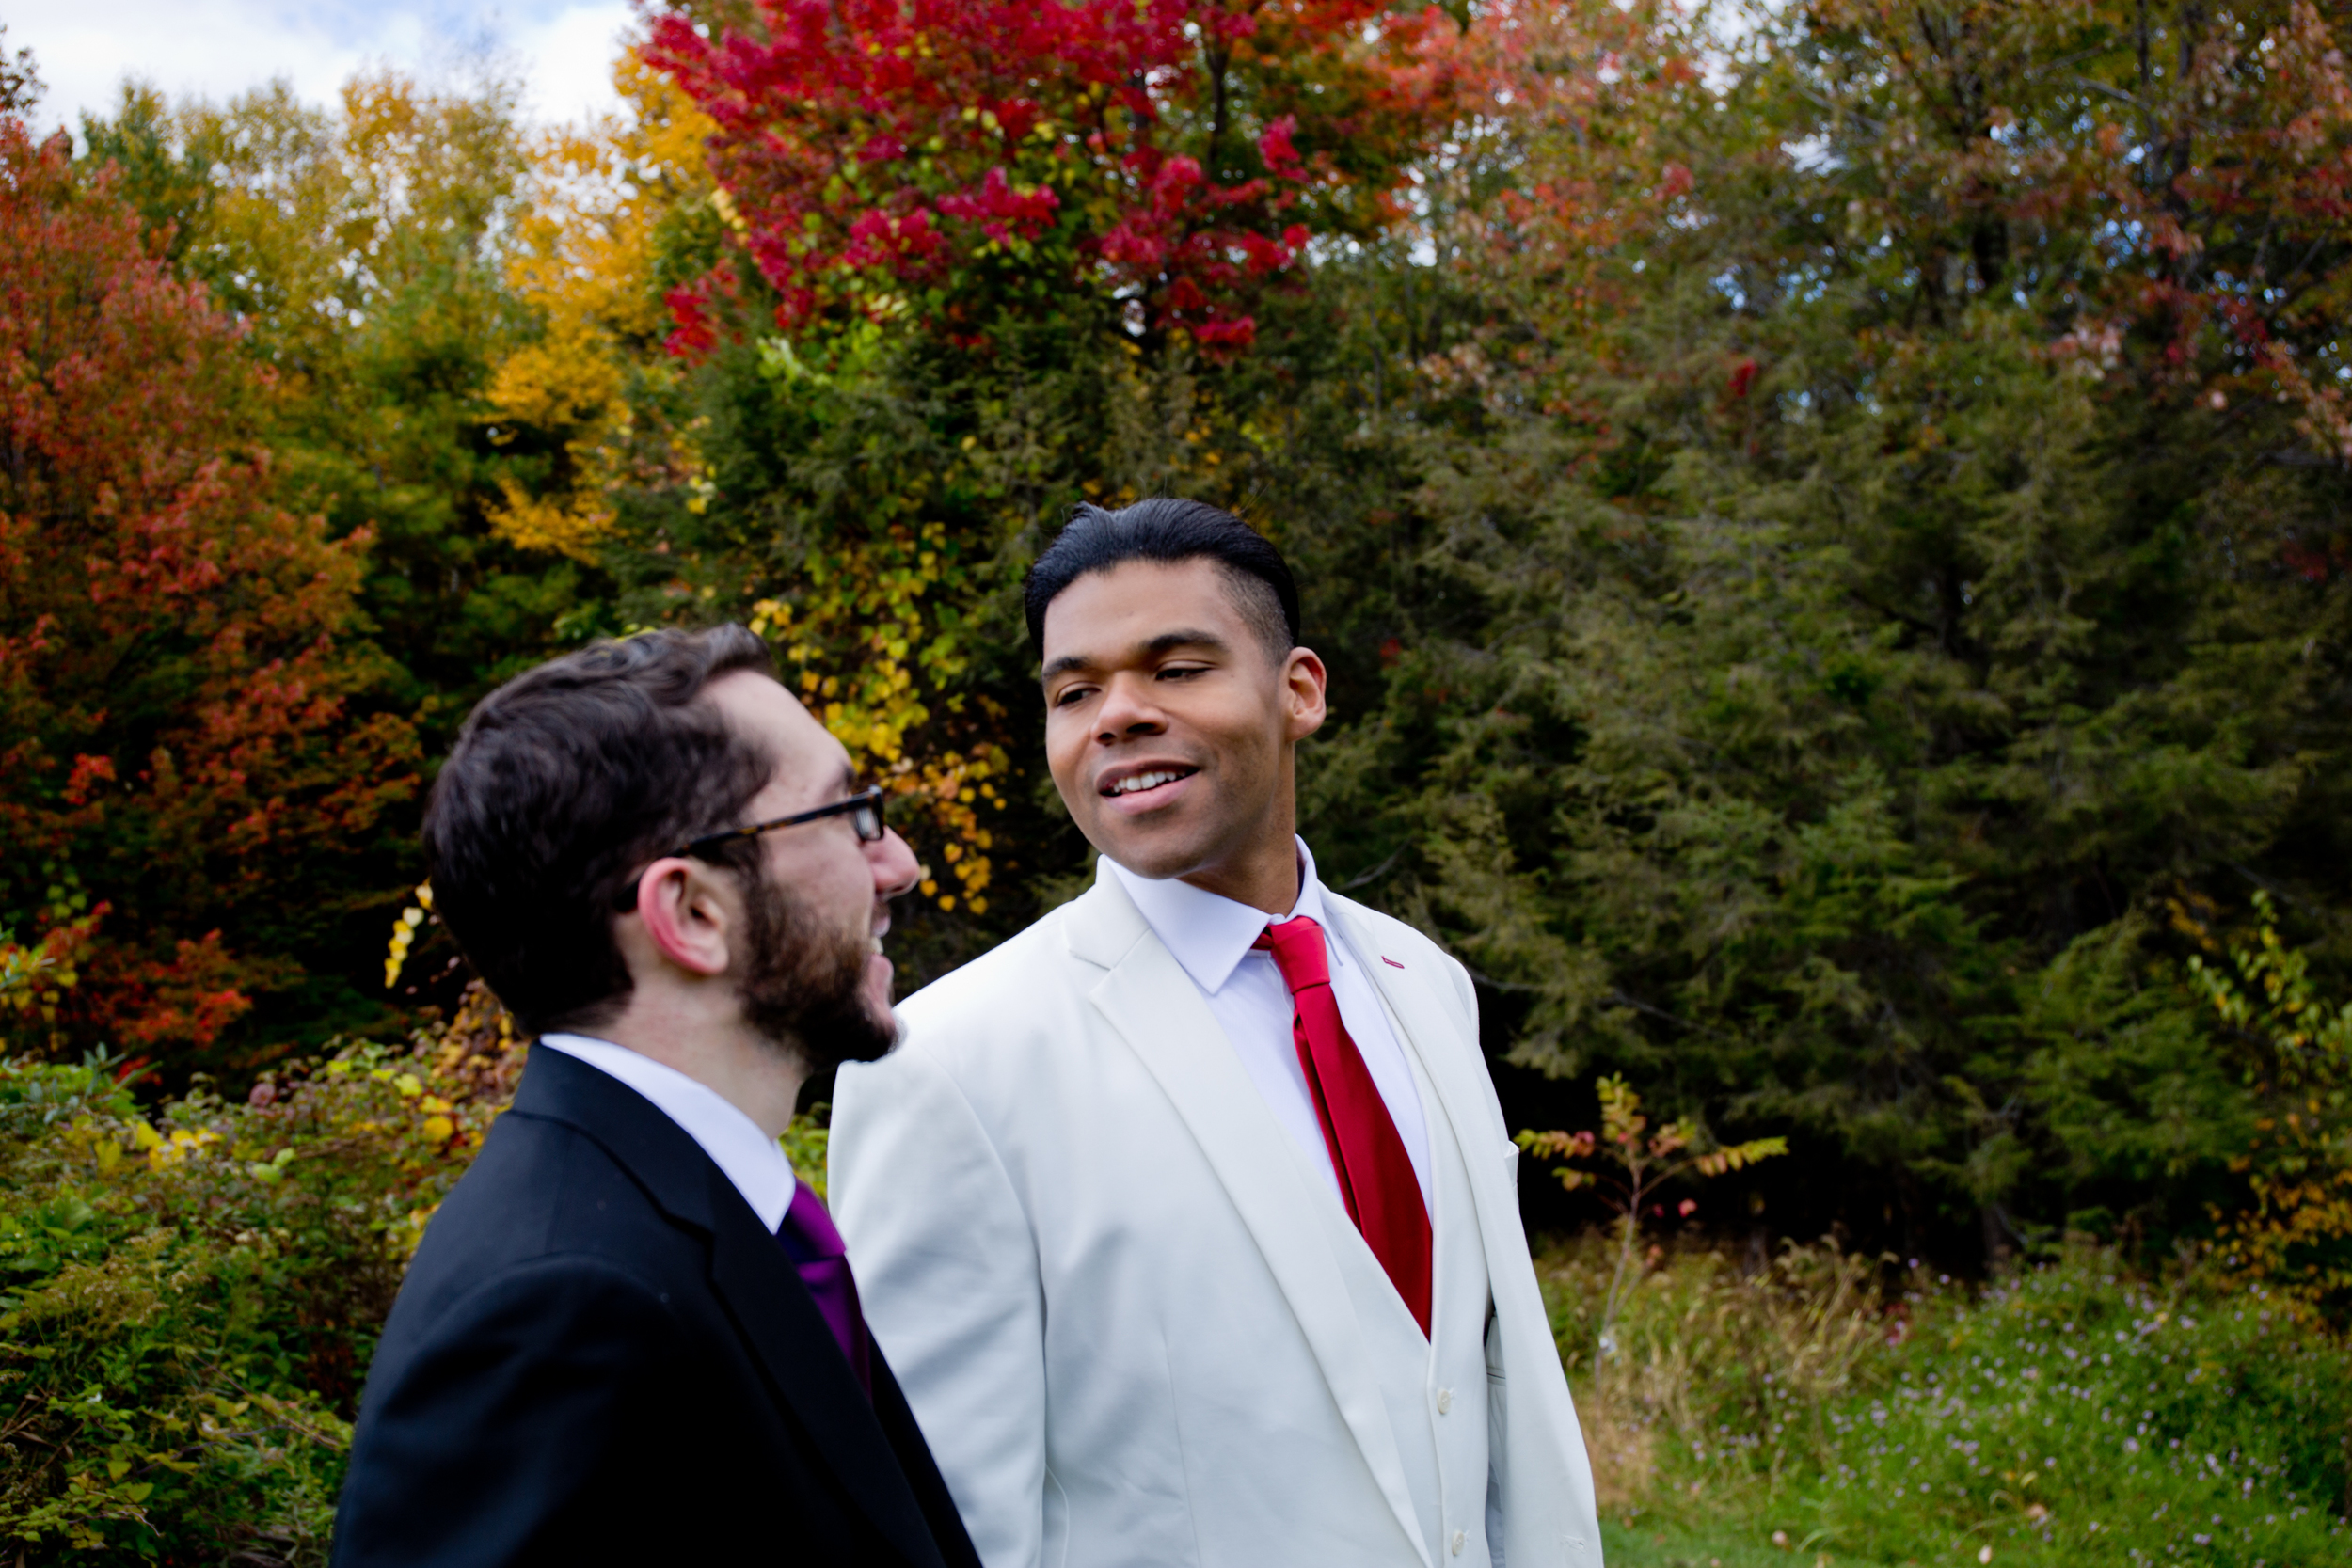 046_CarlyGaebe_SteadfastStudio_WeddingPhotography_Fall_Autumn_Foliage_UpstateNewYork_Gay_Biracial_OnteoraMountainHouse_HudsonValley_Grooms_Rustic.jpg